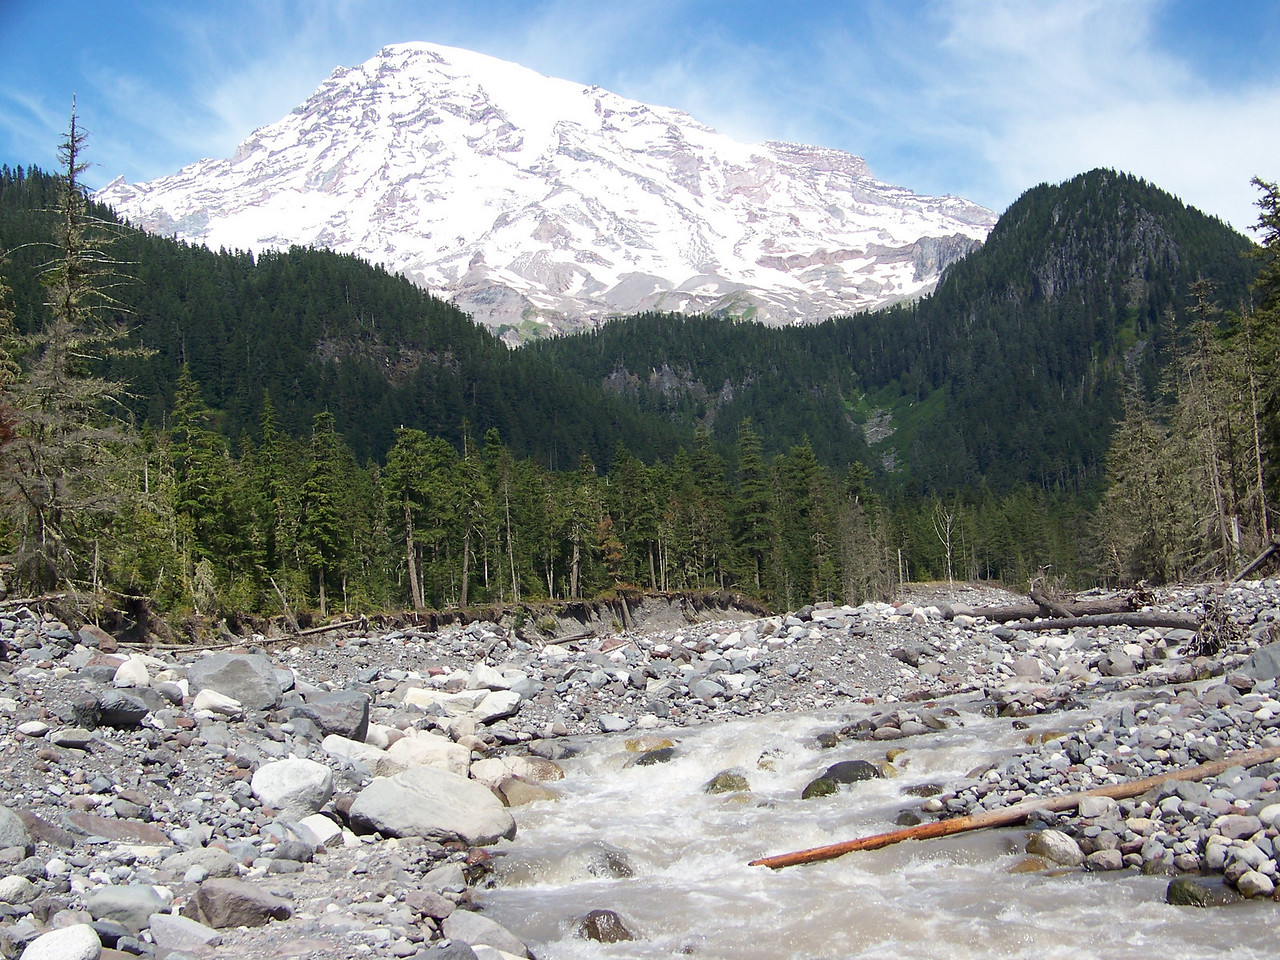 """Our first stop in the park was at the Nisqually River.  The river begins as meltwater from a glacier (also called Nisqually) on Mount Rainier.  The """"glacial silt"""" gives the water that dirty appearance.  A few years before, this river flooded and altered the landscape quite a bit here."""